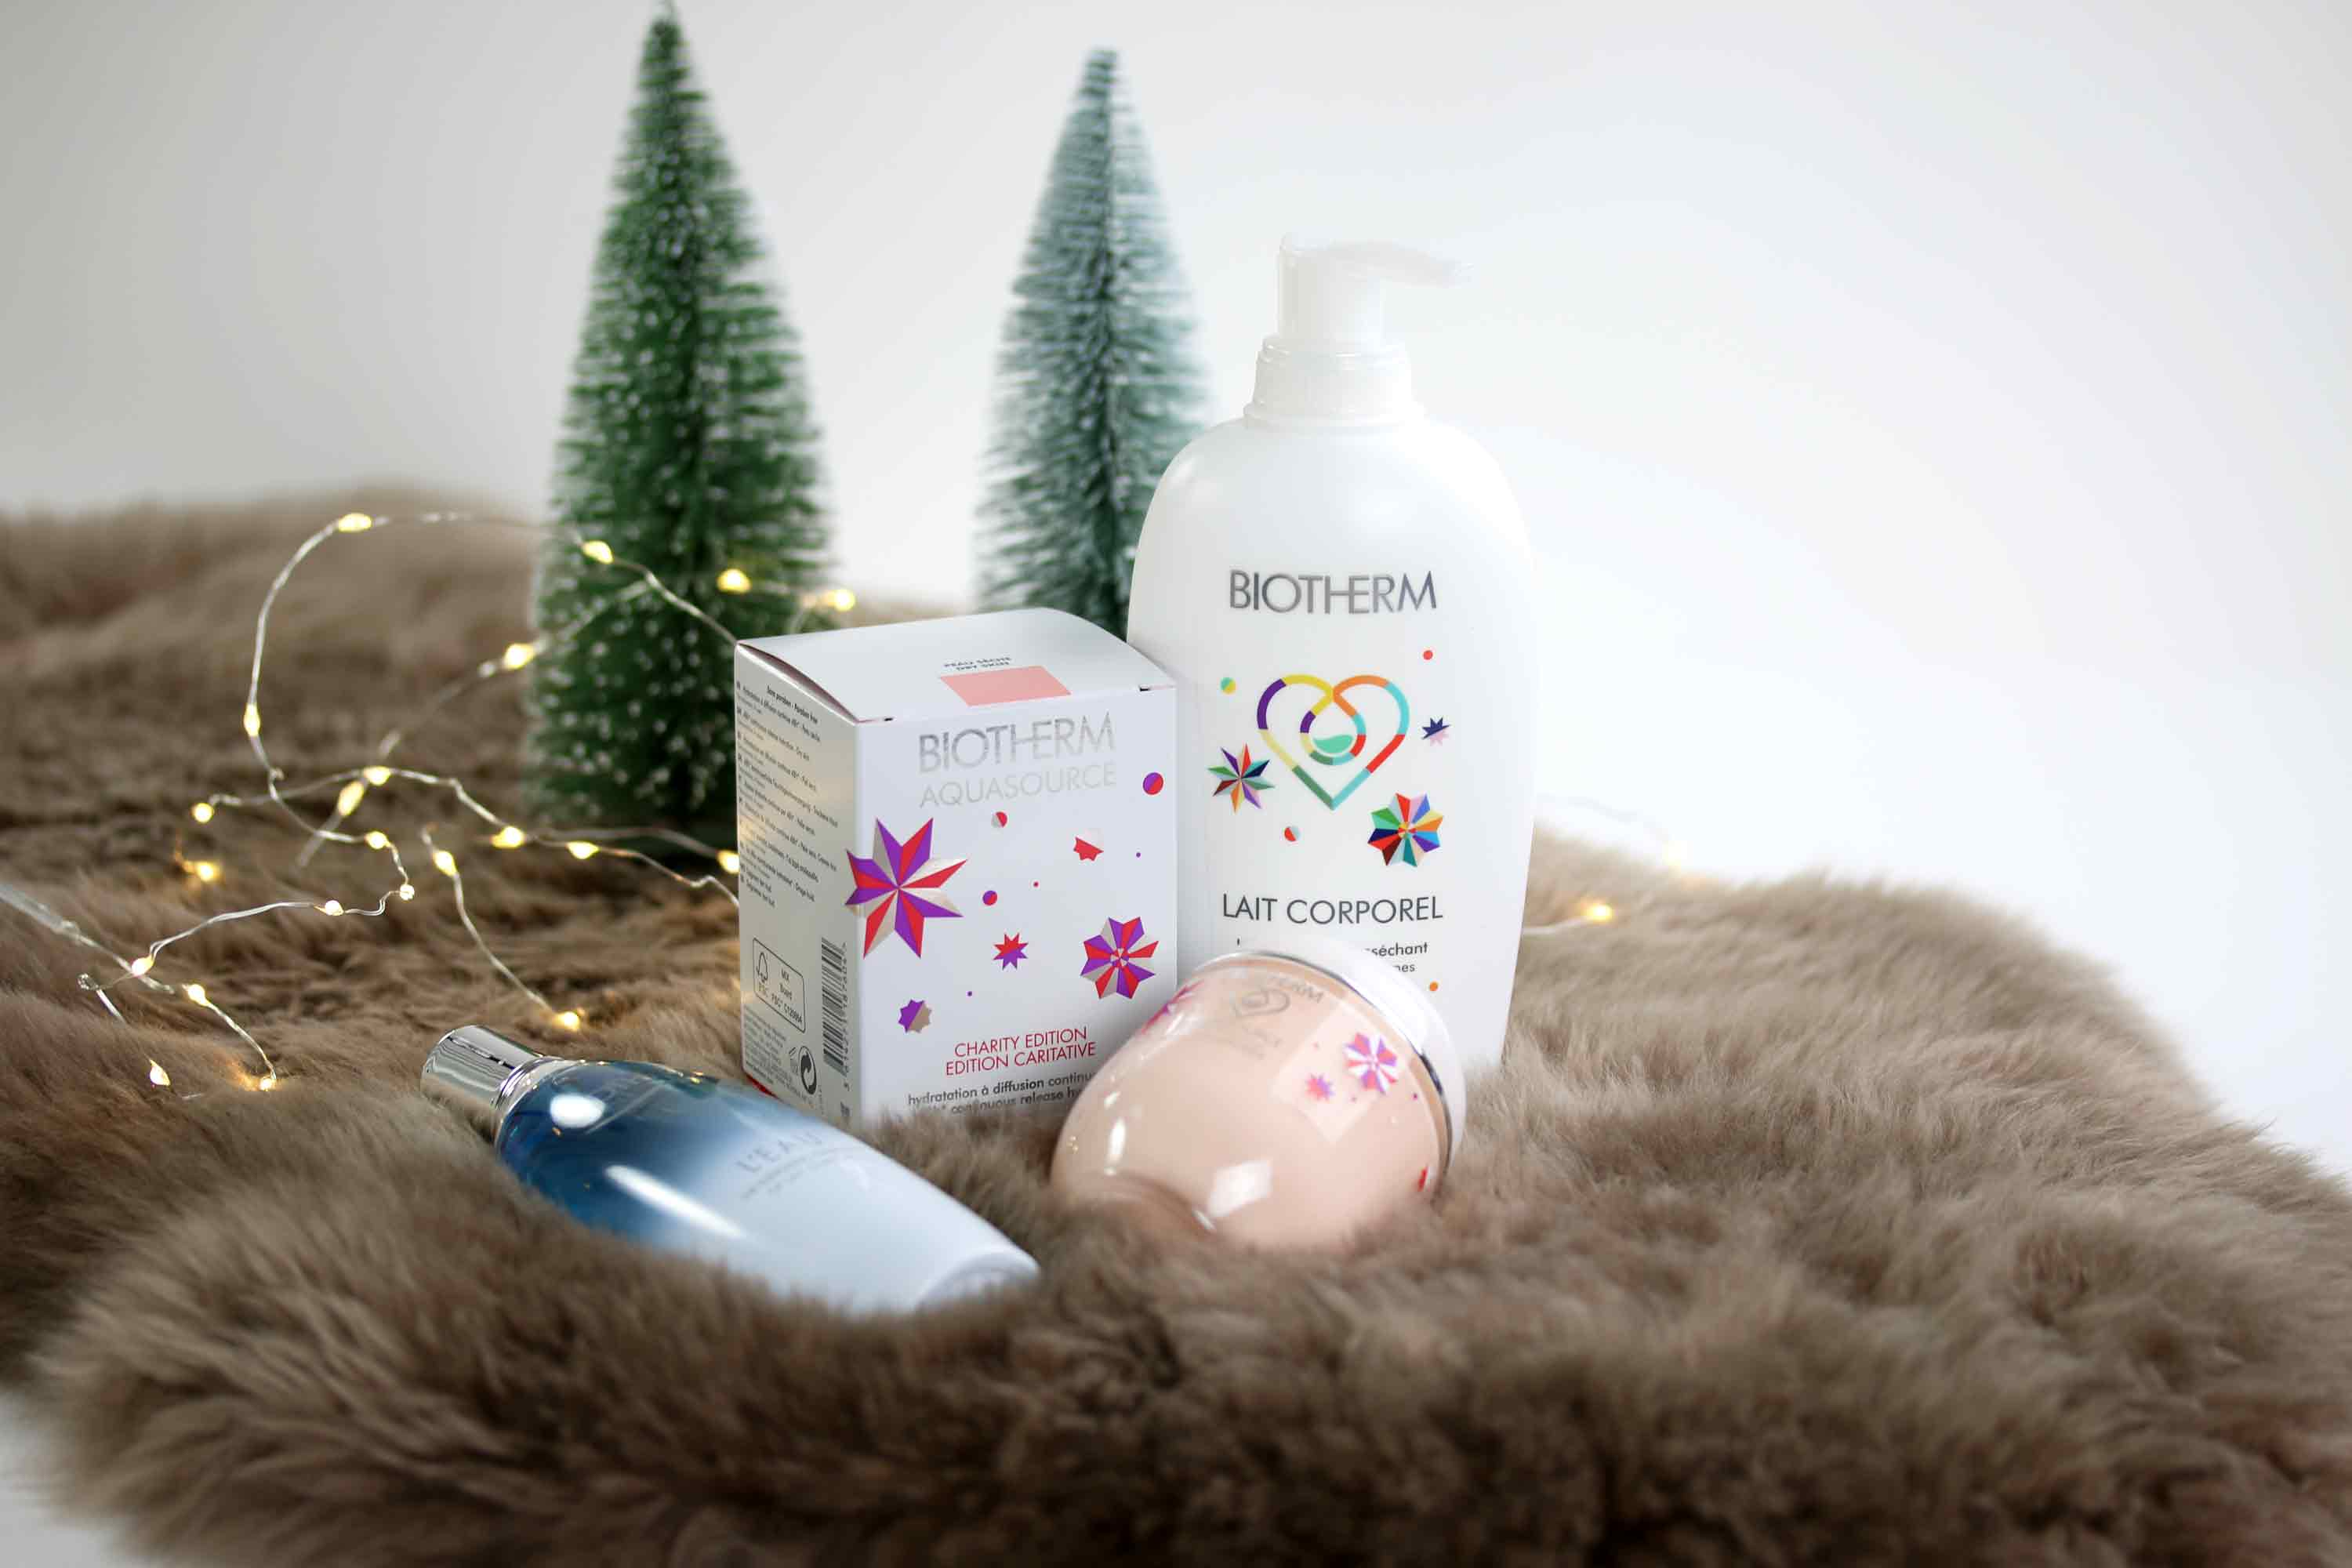 biotherm-charity-edition